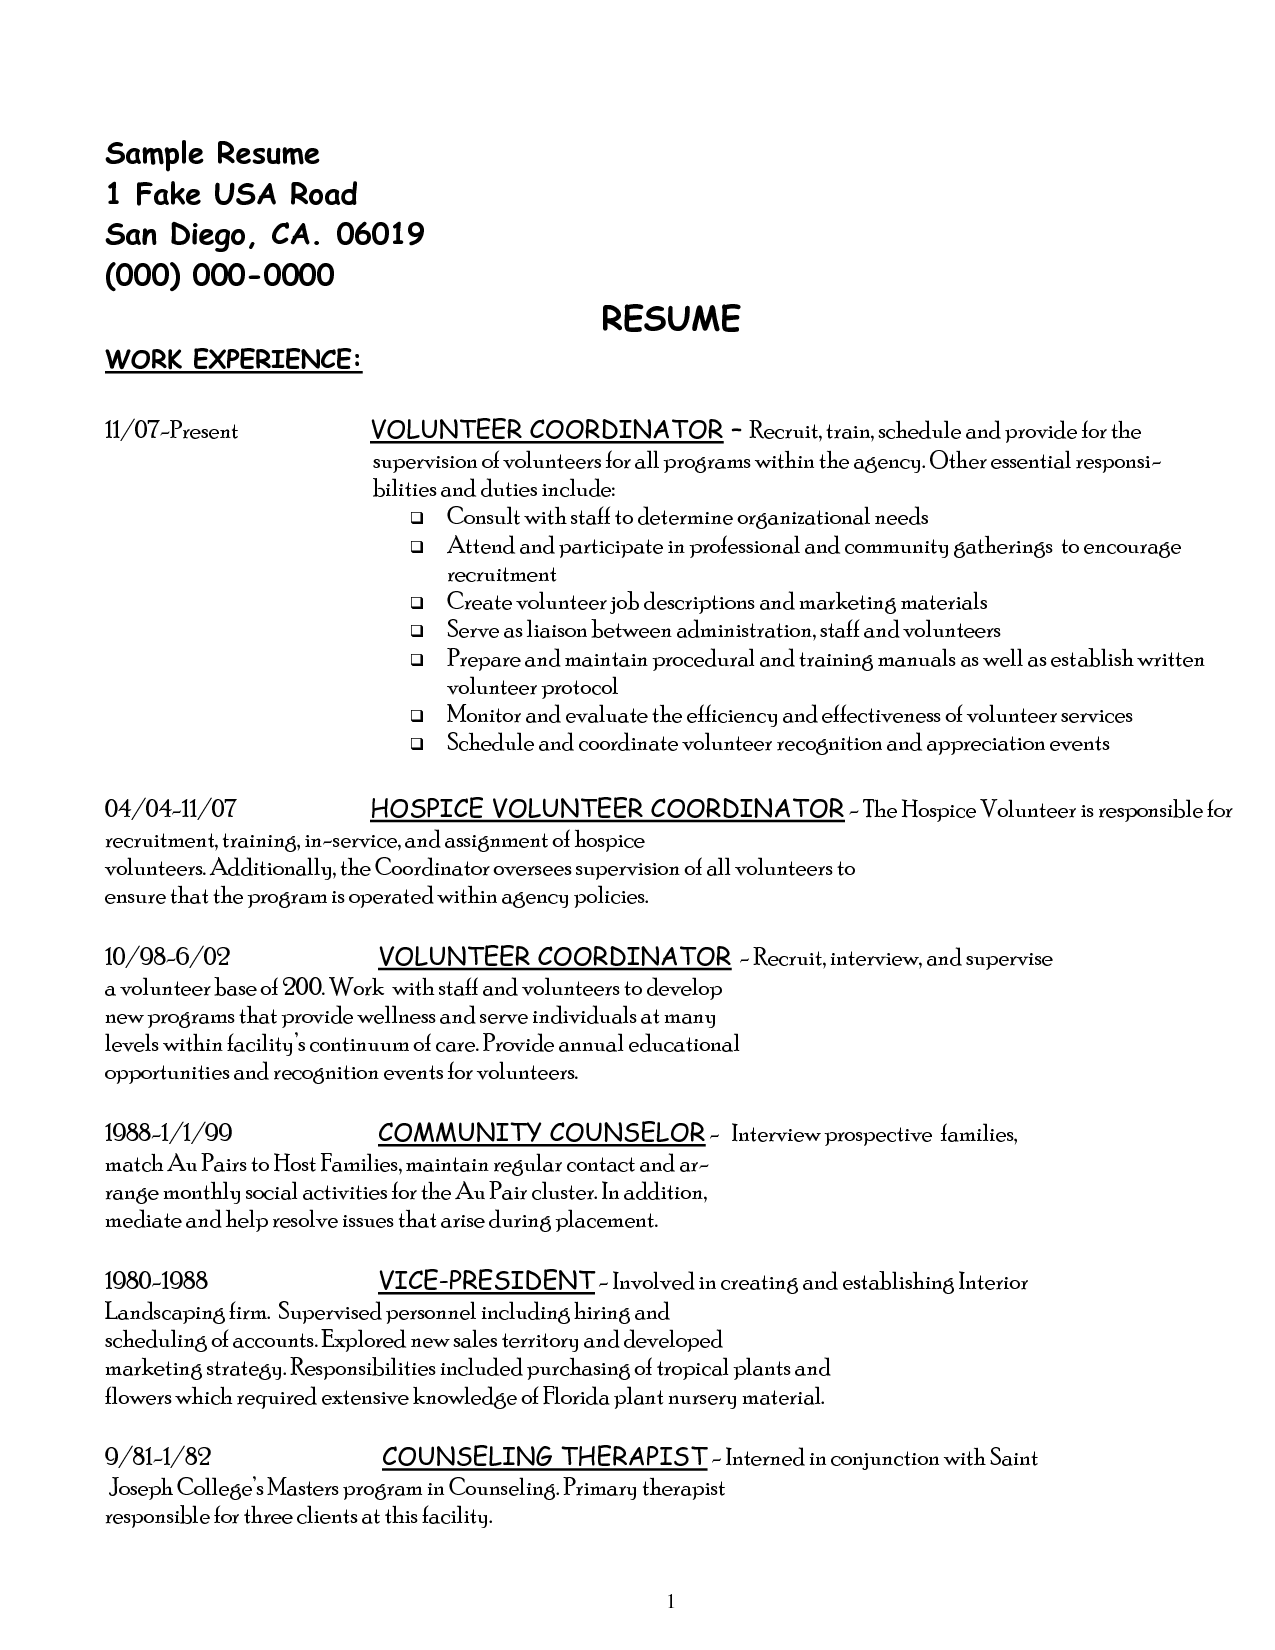 Social Work Resume Objective Volunteer Work On Resume Example Imagesvolunteer Resume Business